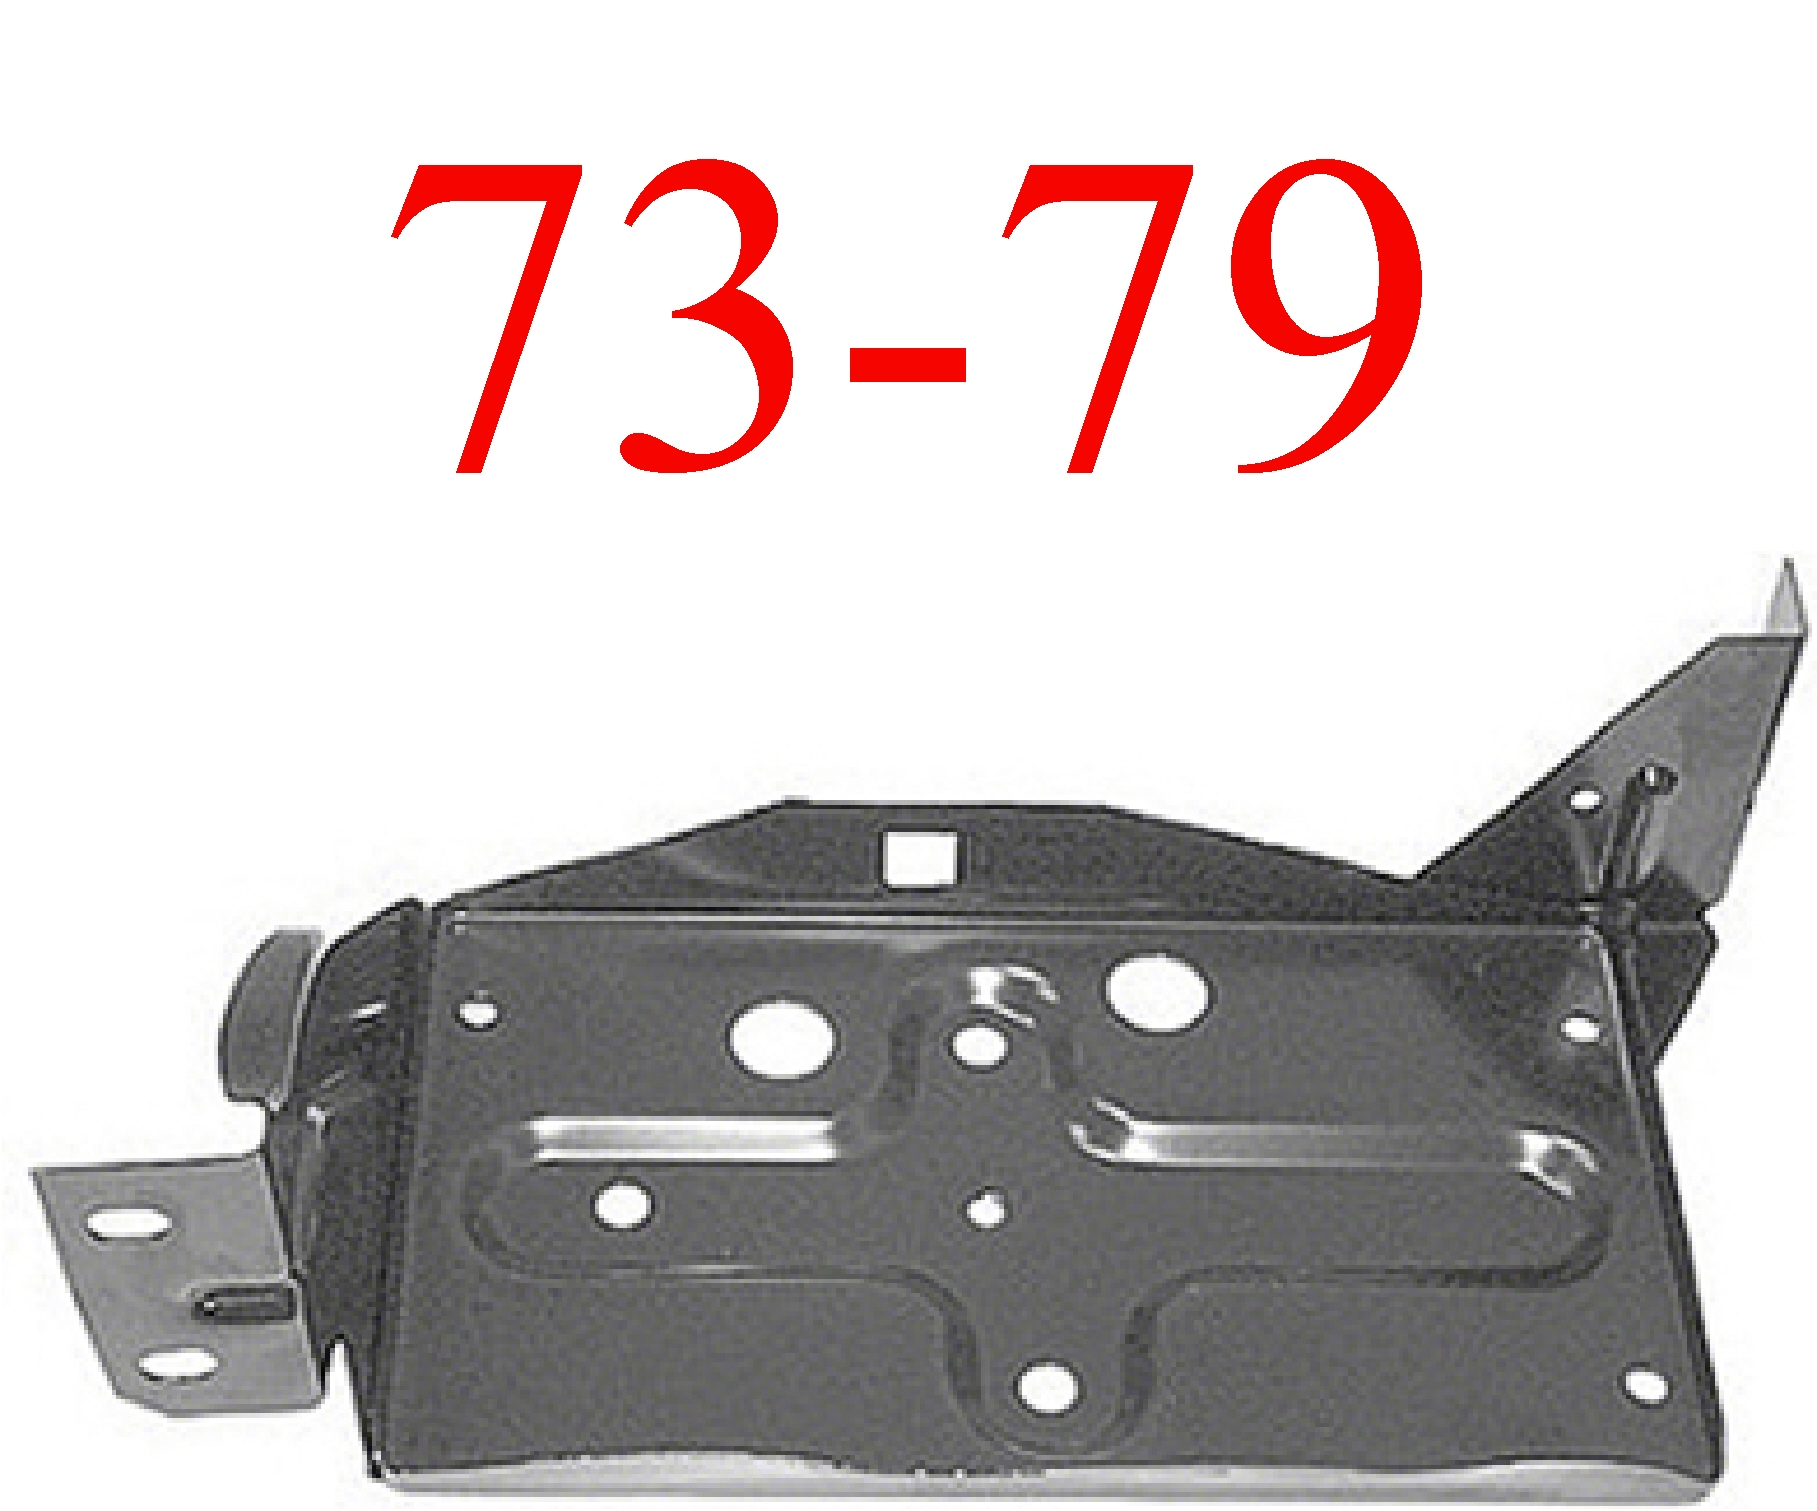 73-79 Ford Battery Box Assembly